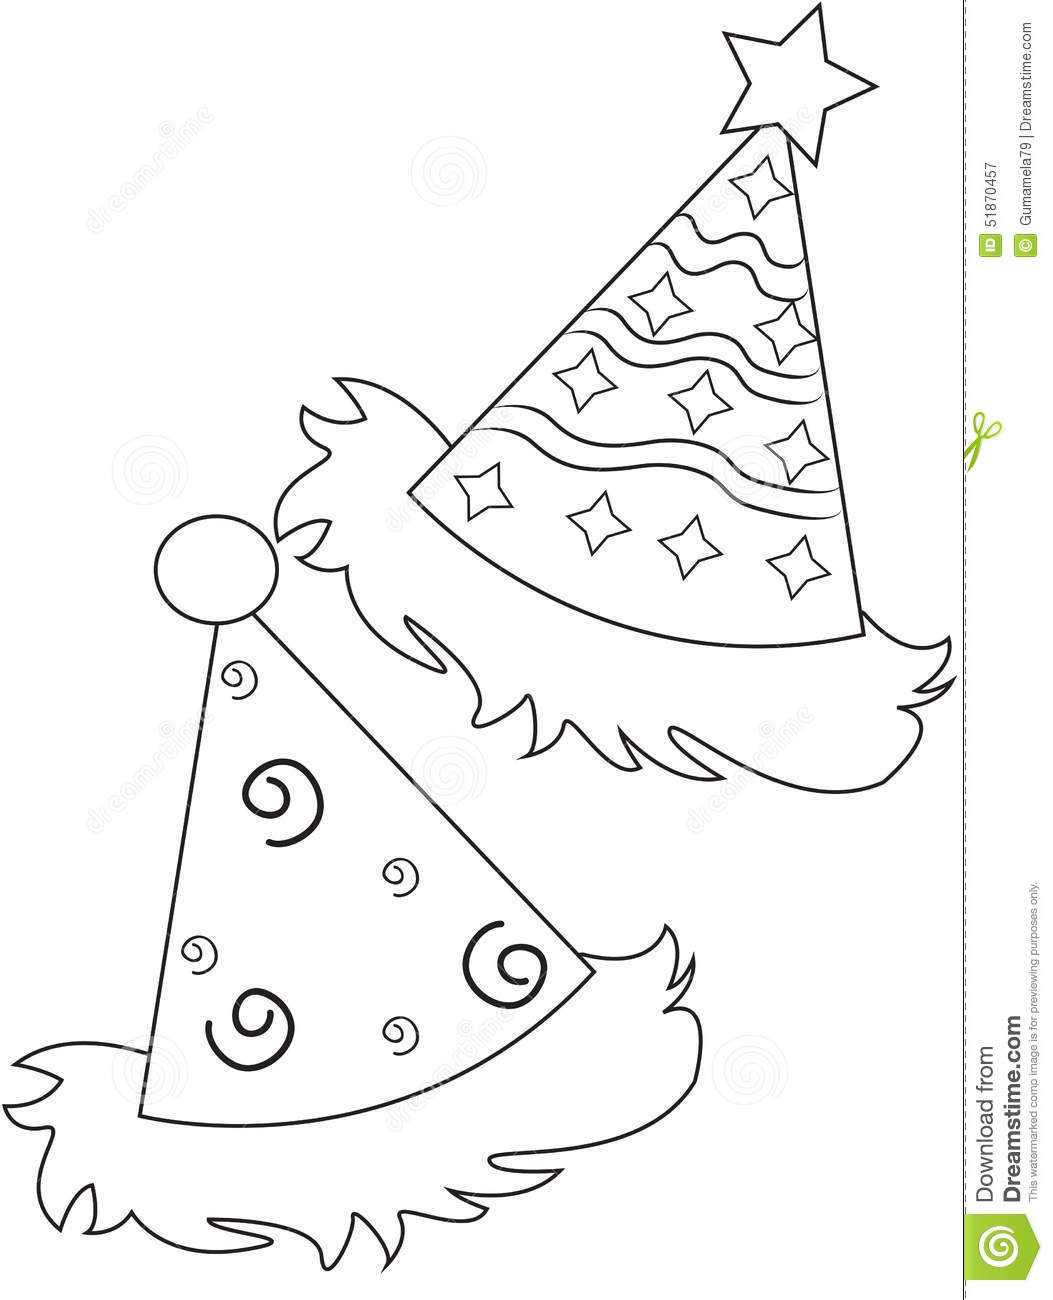 Coloring Page Outline Of Cartoon Girl Chef With Cake Cartoon Vector